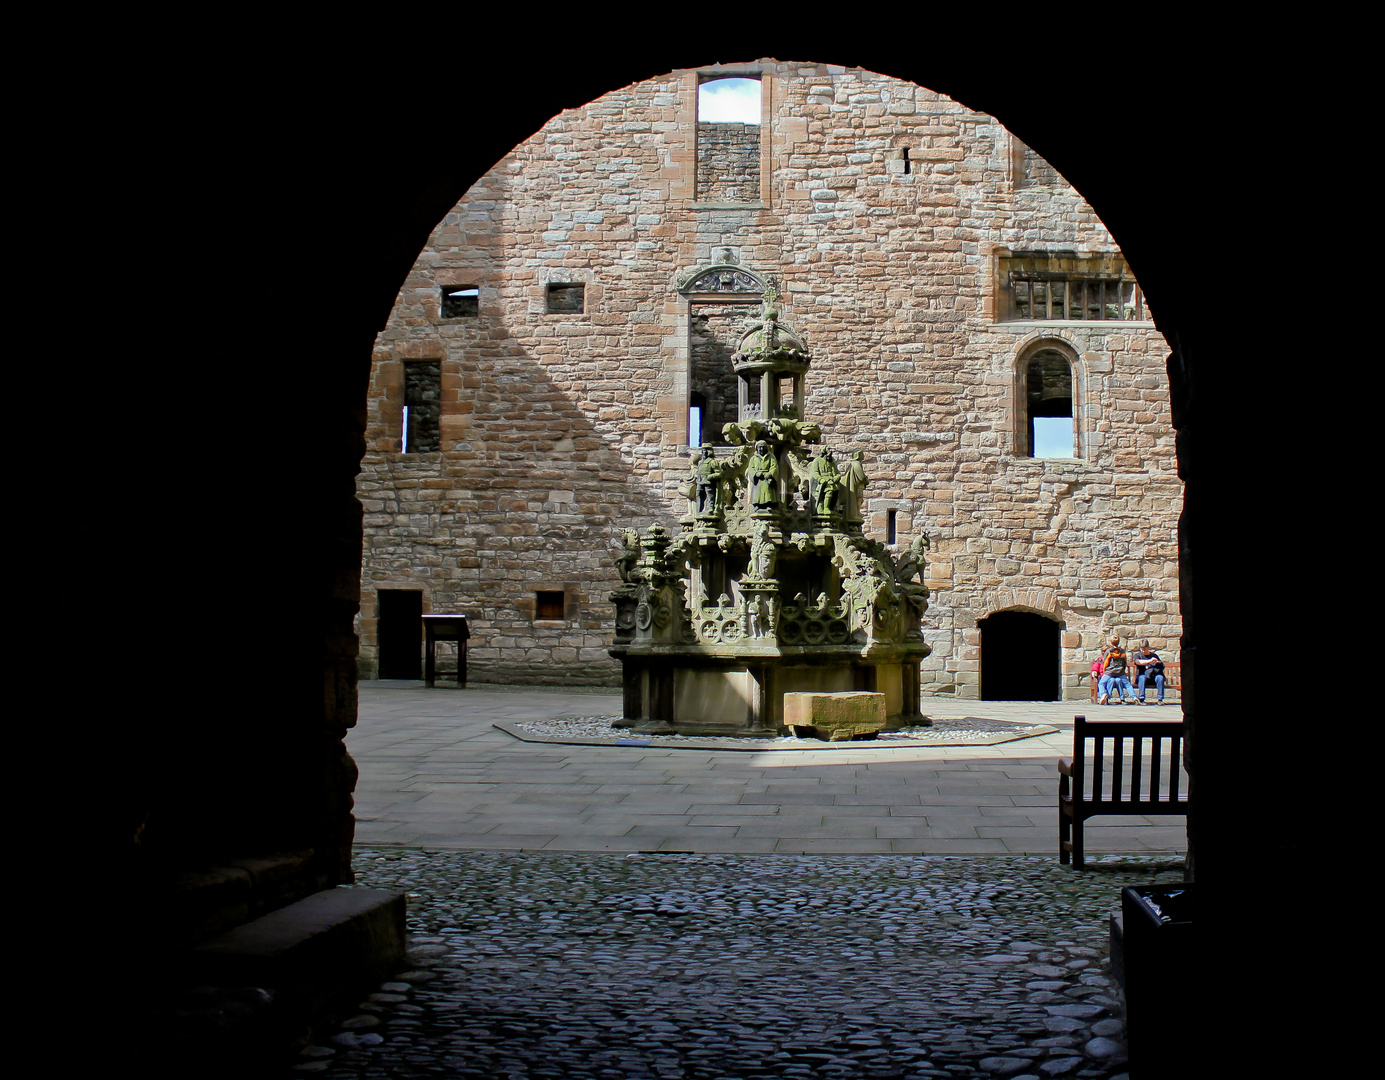 Linlithgow Palace from the main gate